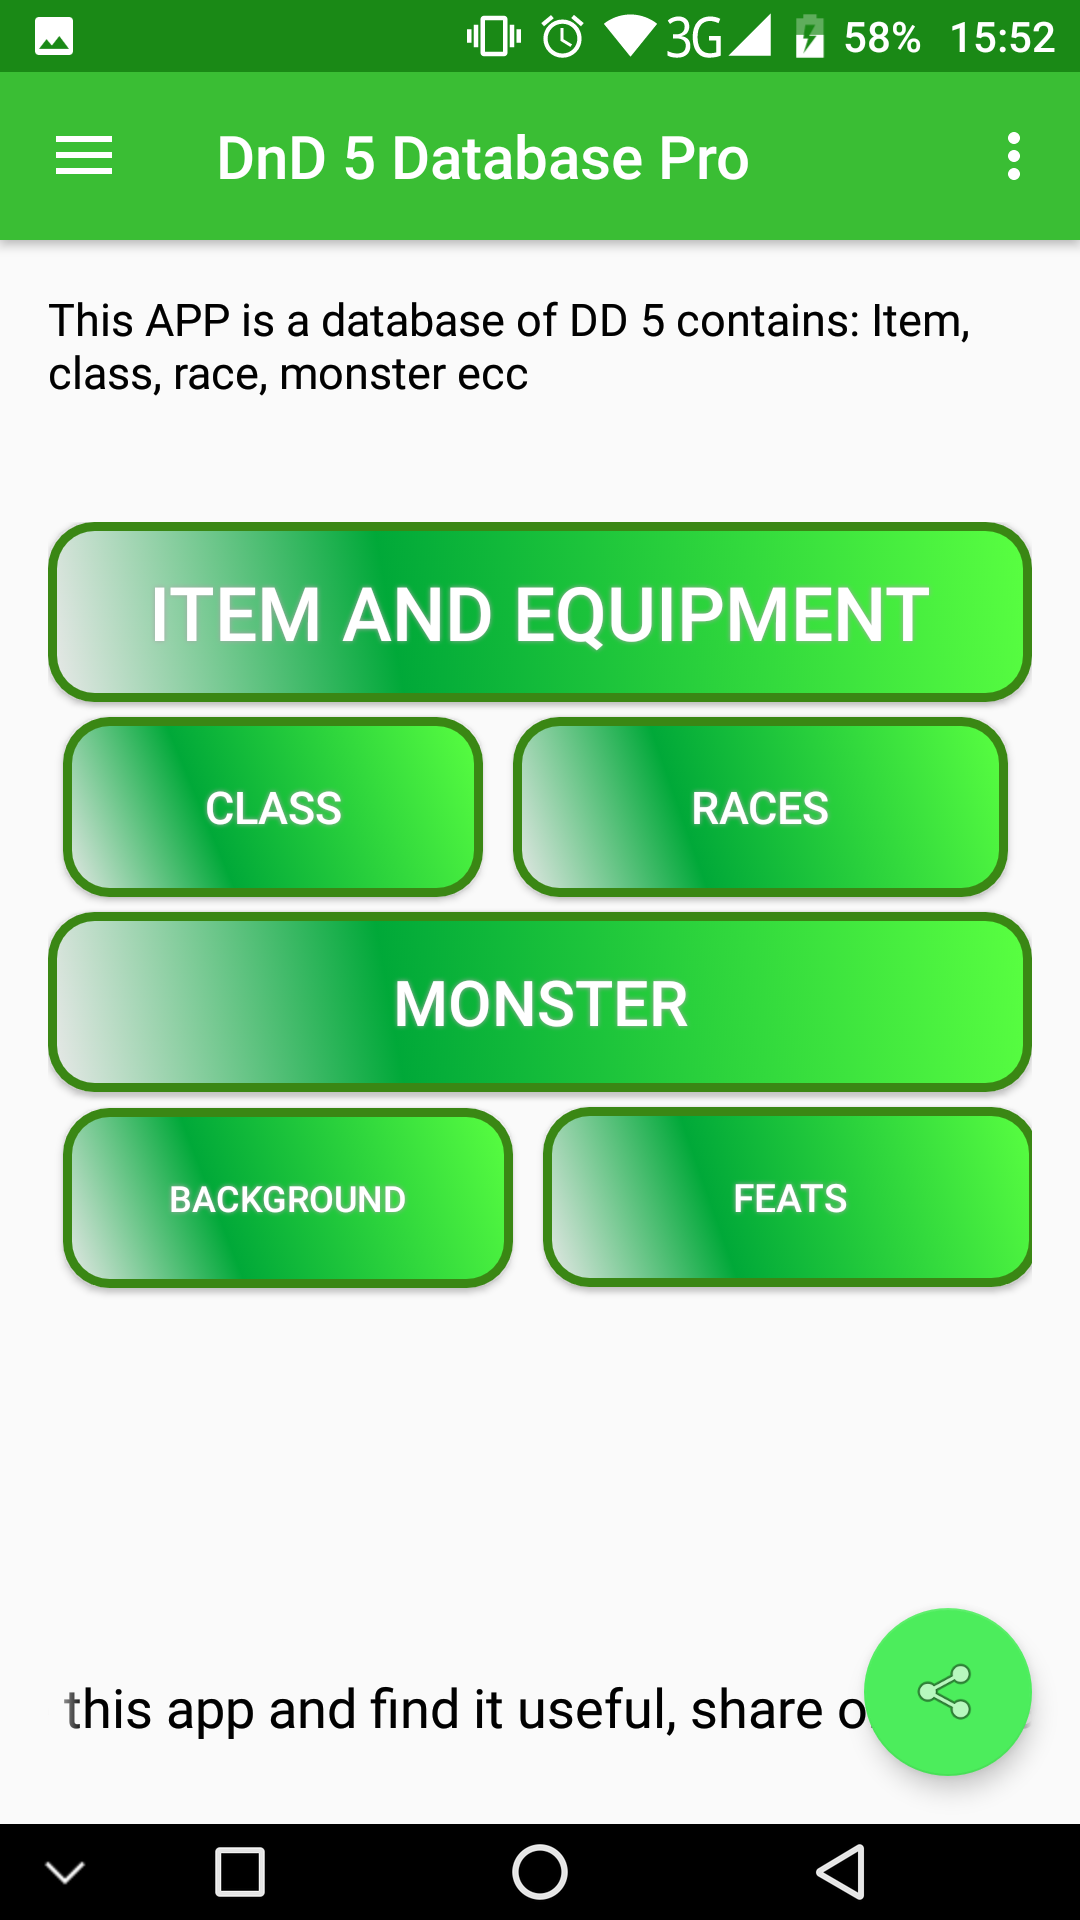 Dnd 5e Database Pro App Ranking and Store Data | App Annie